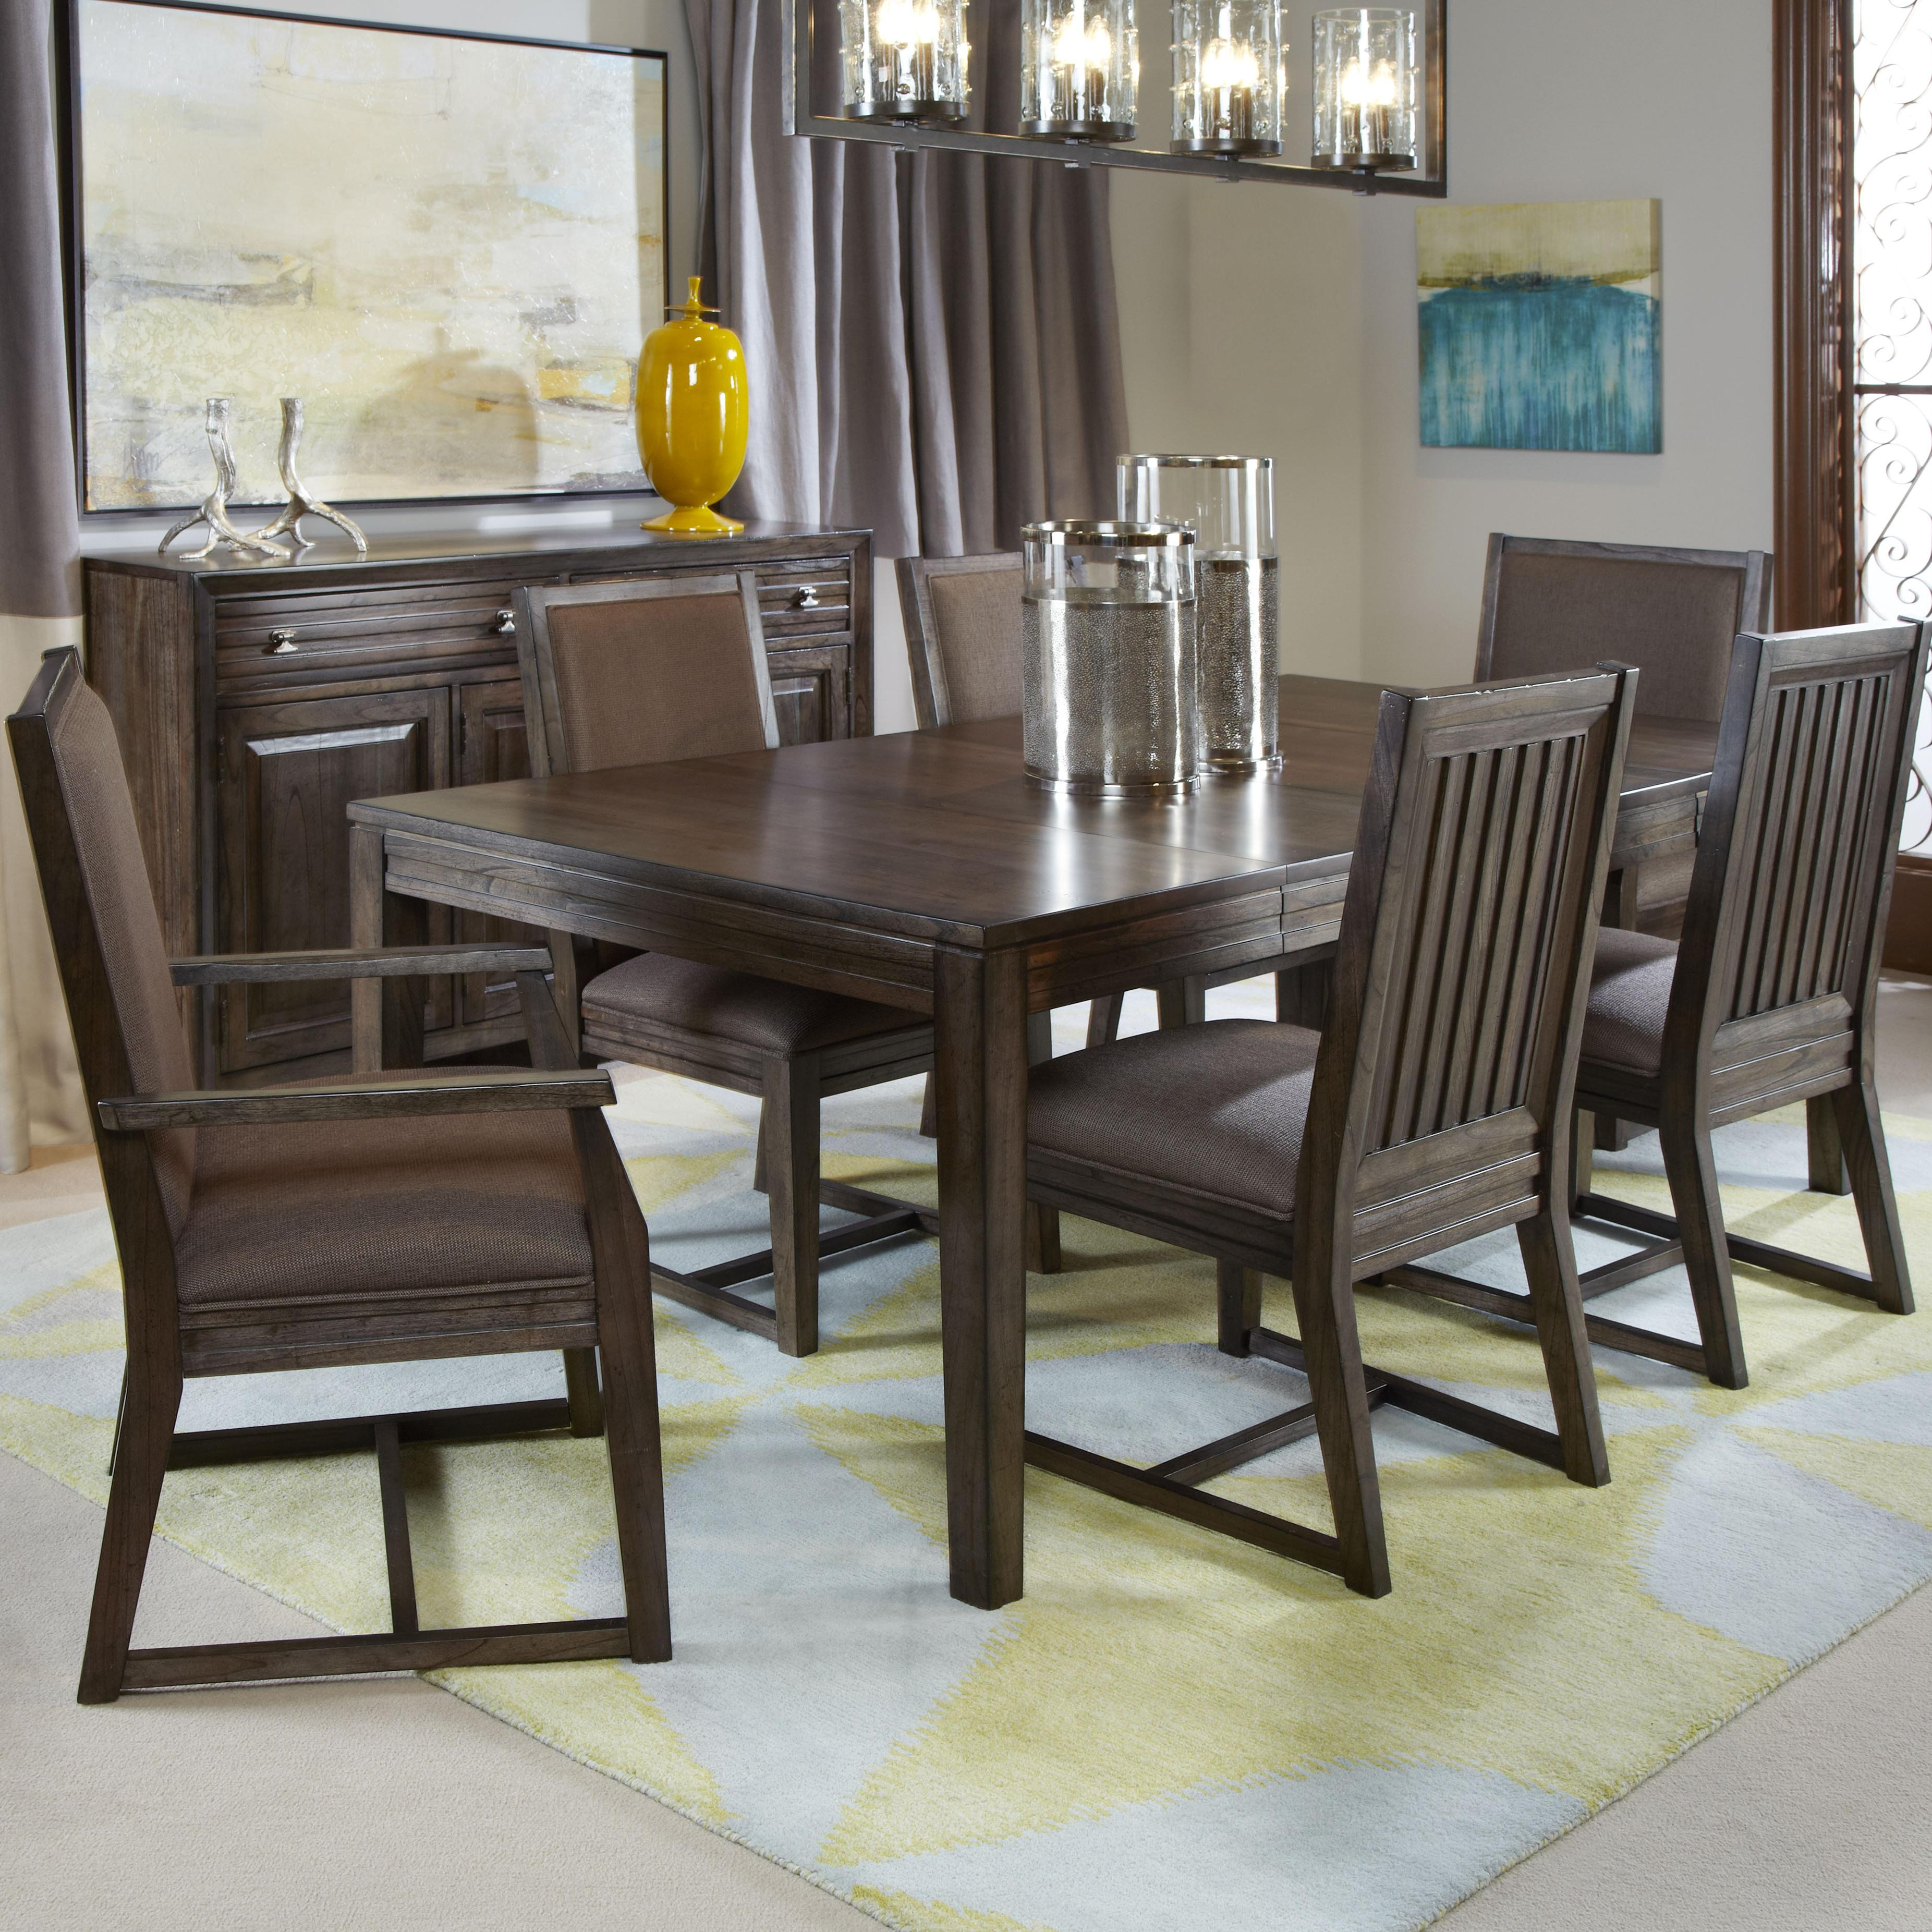 Kincaid Dining Room Set: Kincaid Furniture Montreat Seven Piece Formal Dining Set With Upholstered Chairs